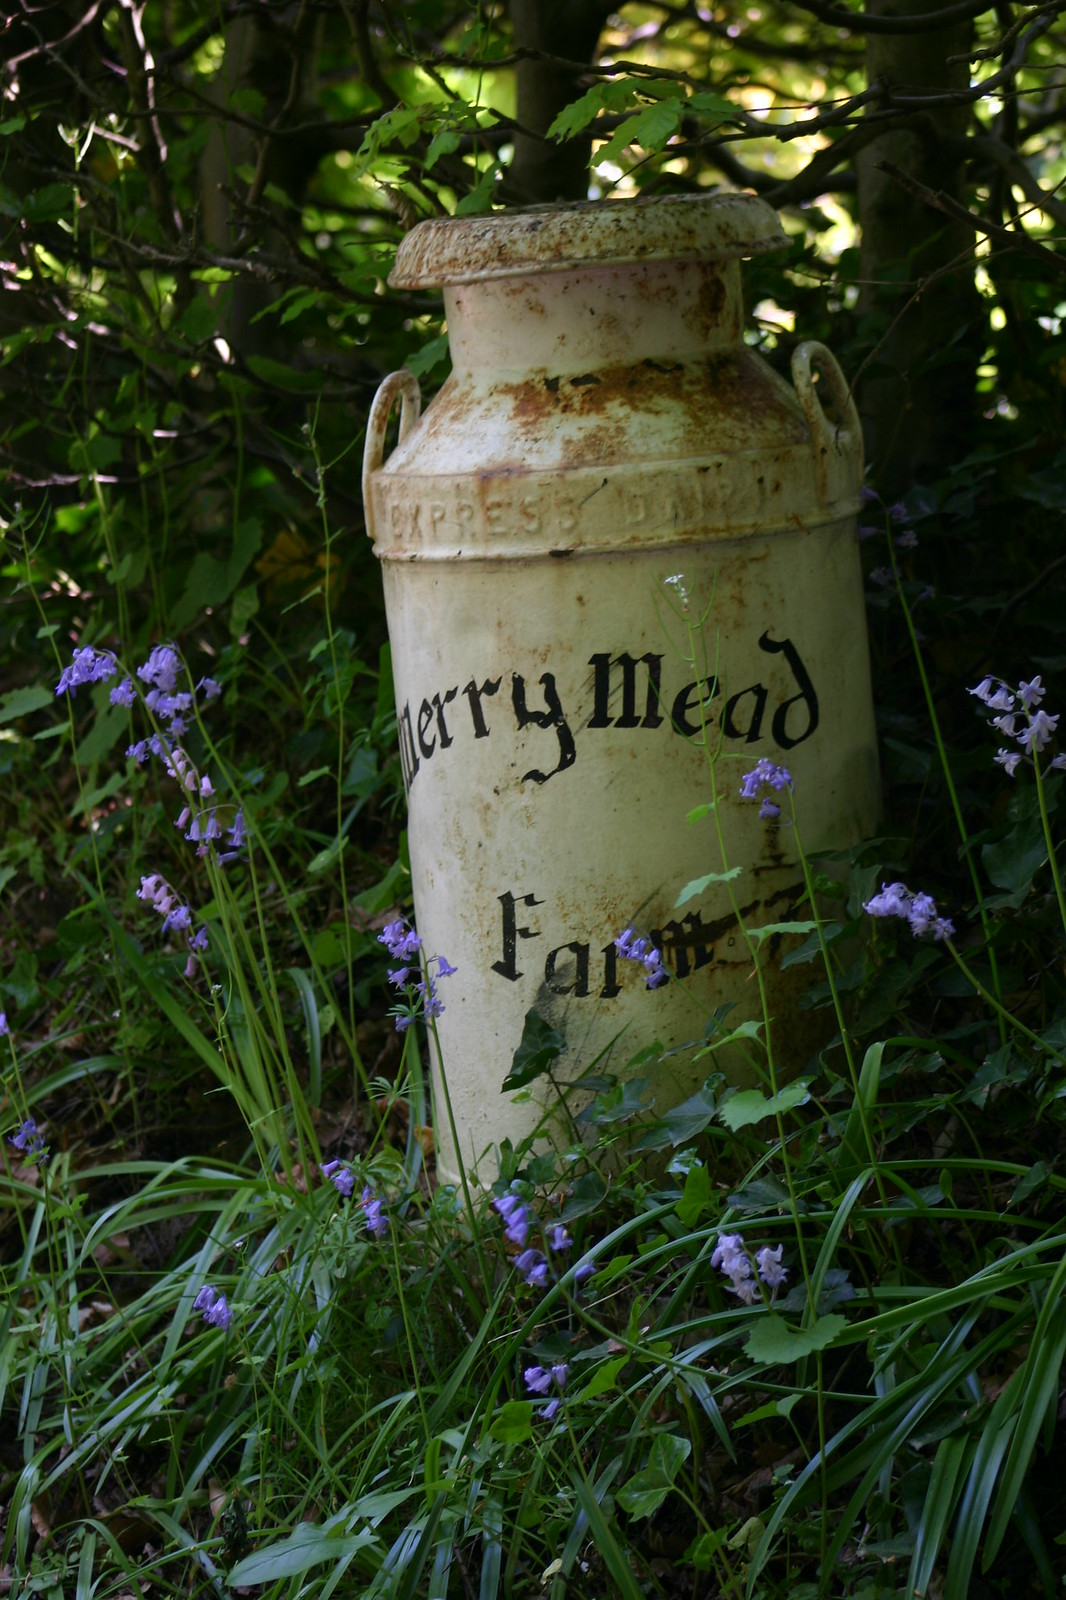 Merry Mead Farm churn